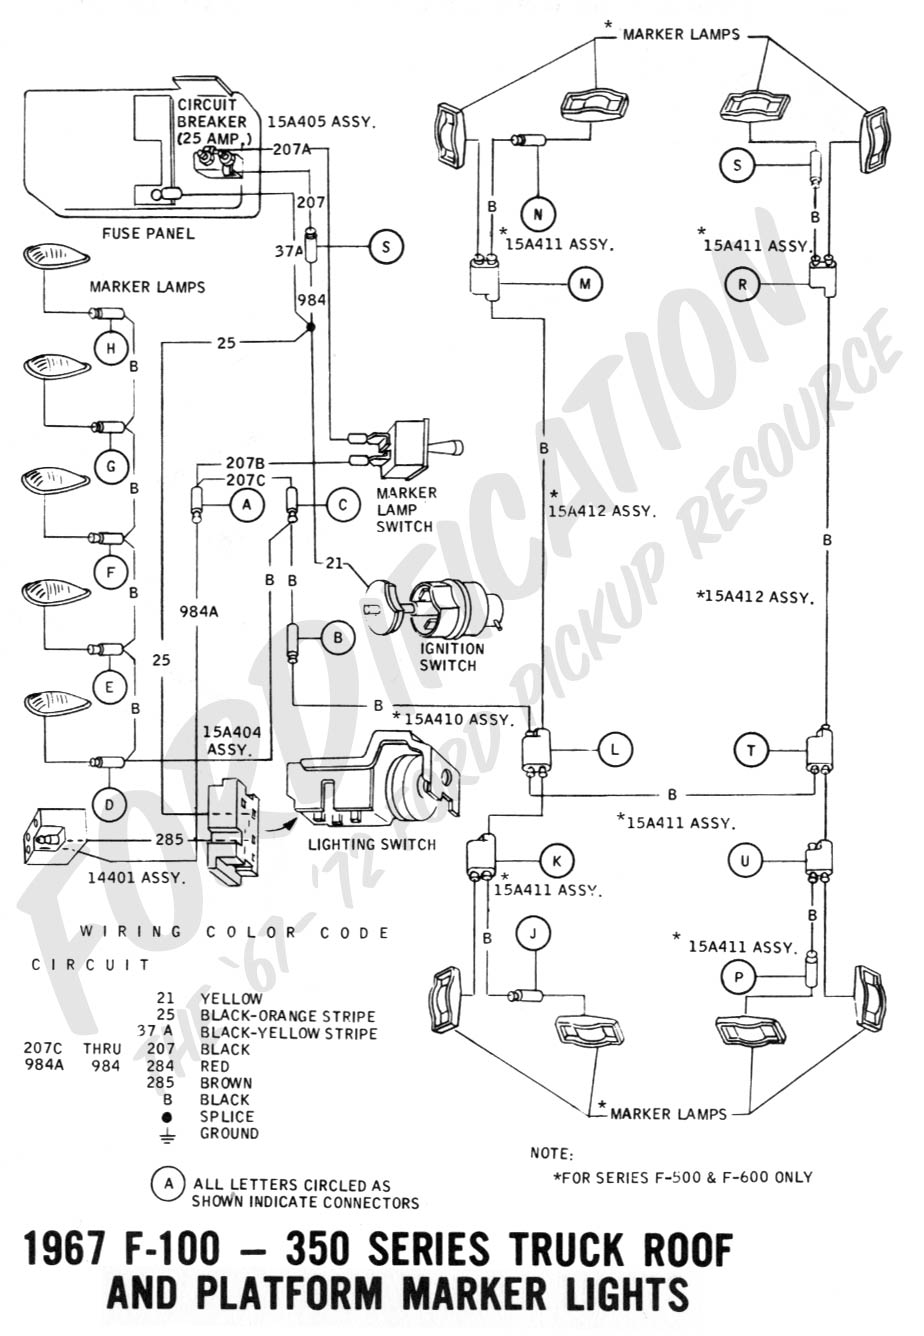 Ford Truck Technical Drawings And Schematics Section H Wiring 1967 Chevy Chevelle Diagram F 100 Thru 350 Roof Platform Marker Lights